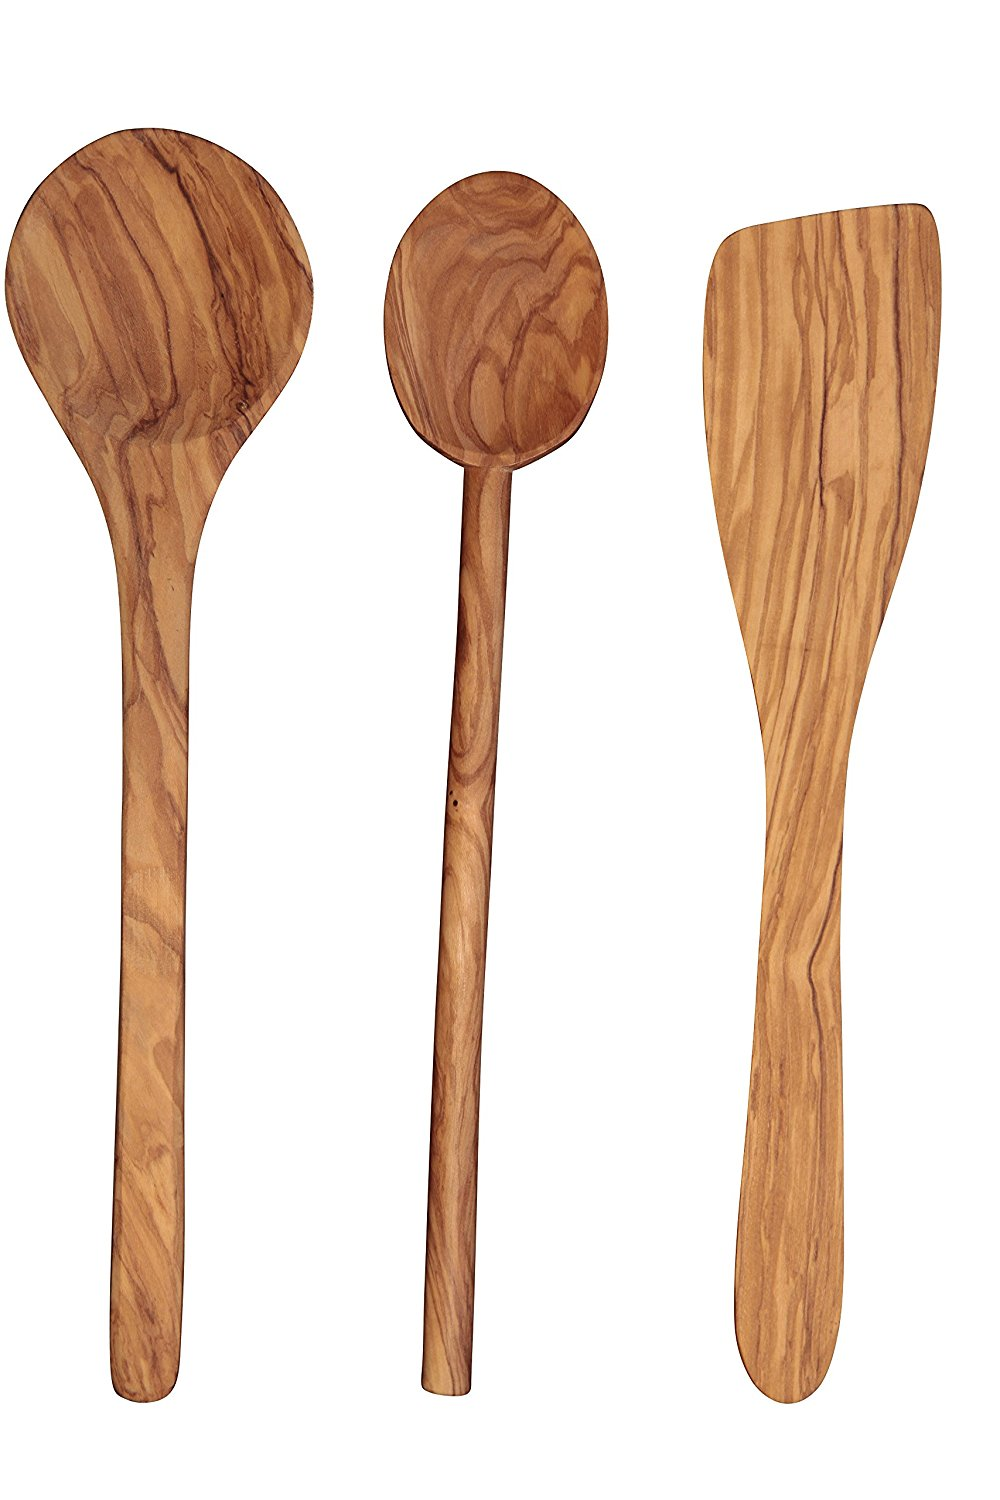 Olive wood is my favorite for spoons and such. I just find it to be beautiful. Justin gave me olive wood spoons for Valentines several years ago and they're still my favorite!